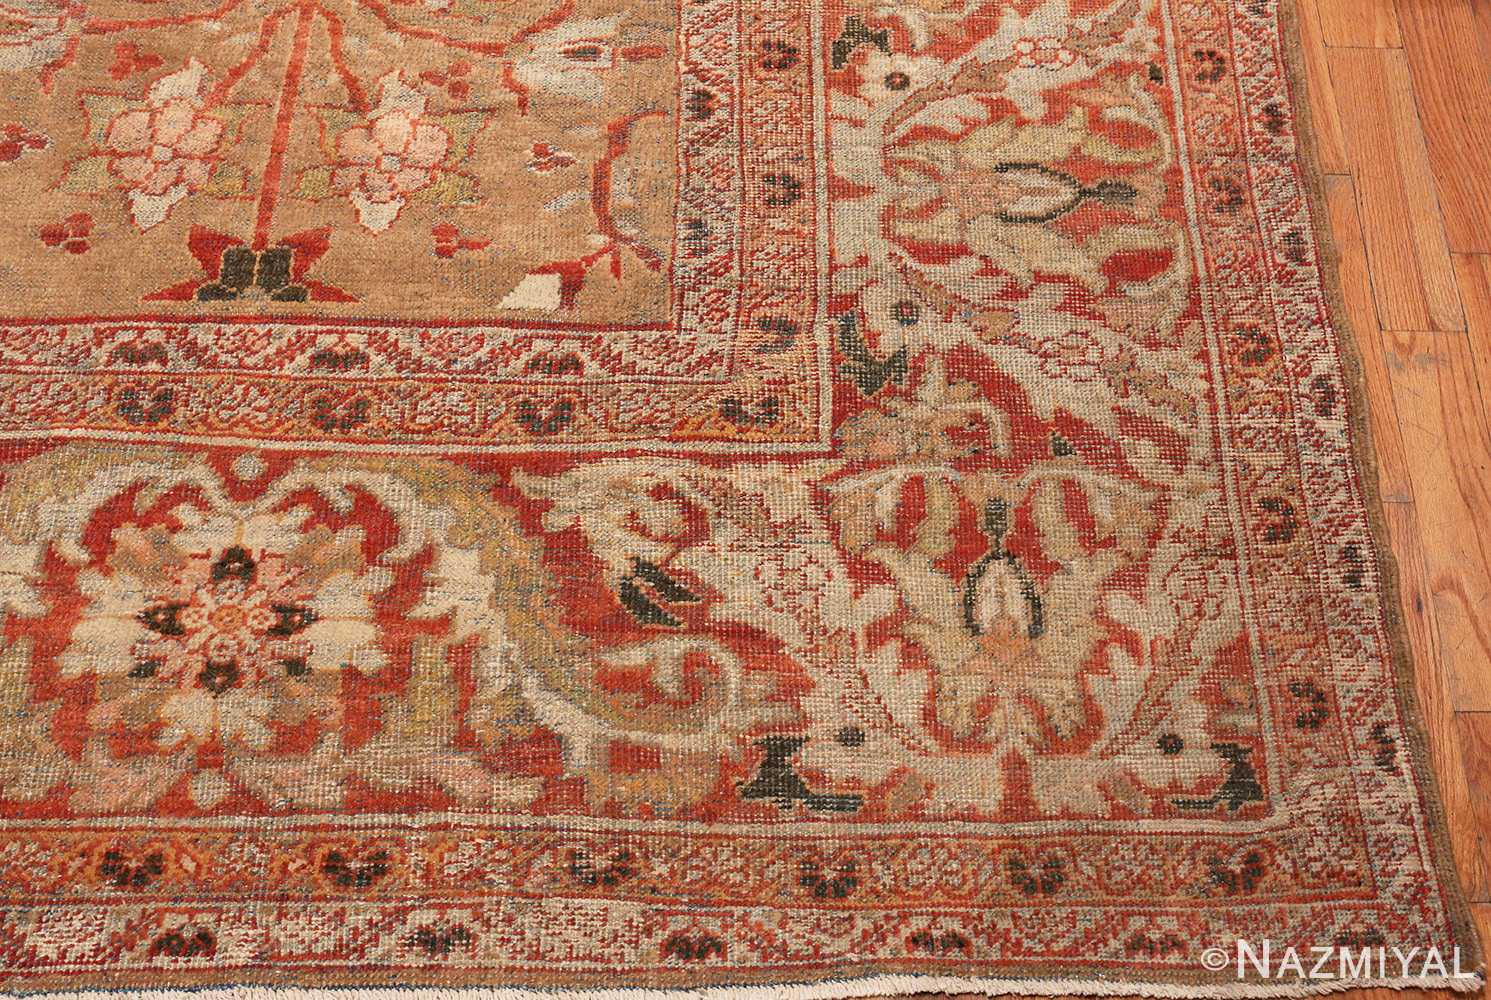 Picture of the Corner of Antique Persian Sultanabad Rug #48944 from Nazmiyal Antique Rugs in NYC